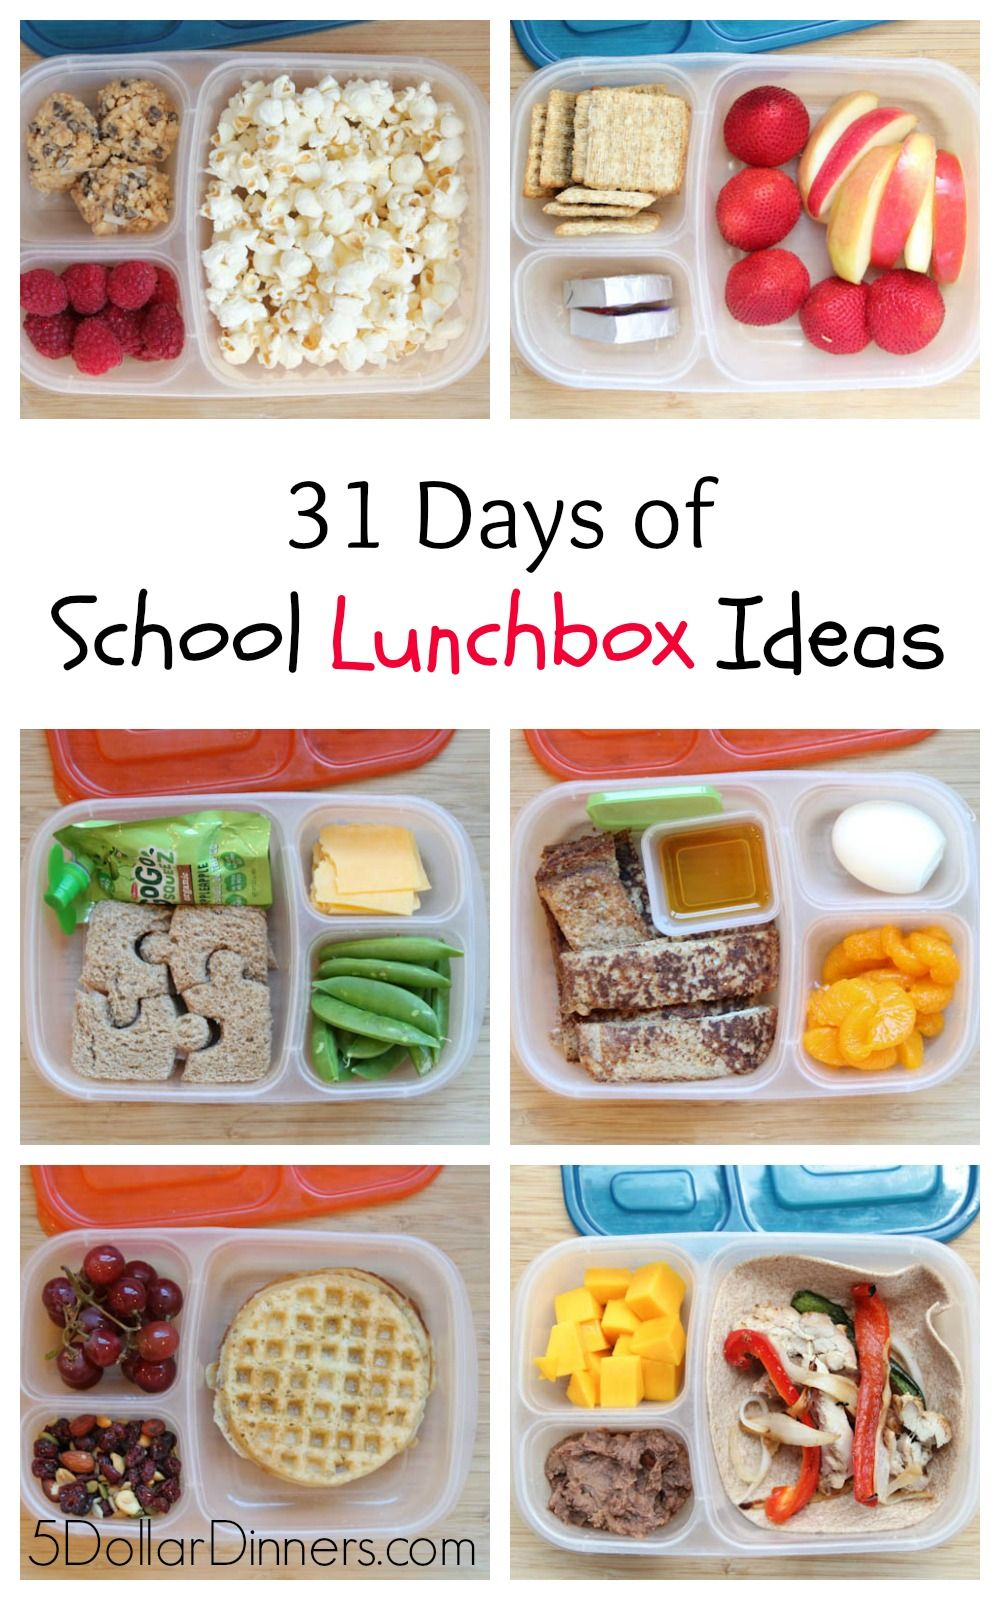 31 days of school lunchbox ideas ideen f rs mittagessen pinterest. Black Bedroom Furniture Sets. Home Design Ideas